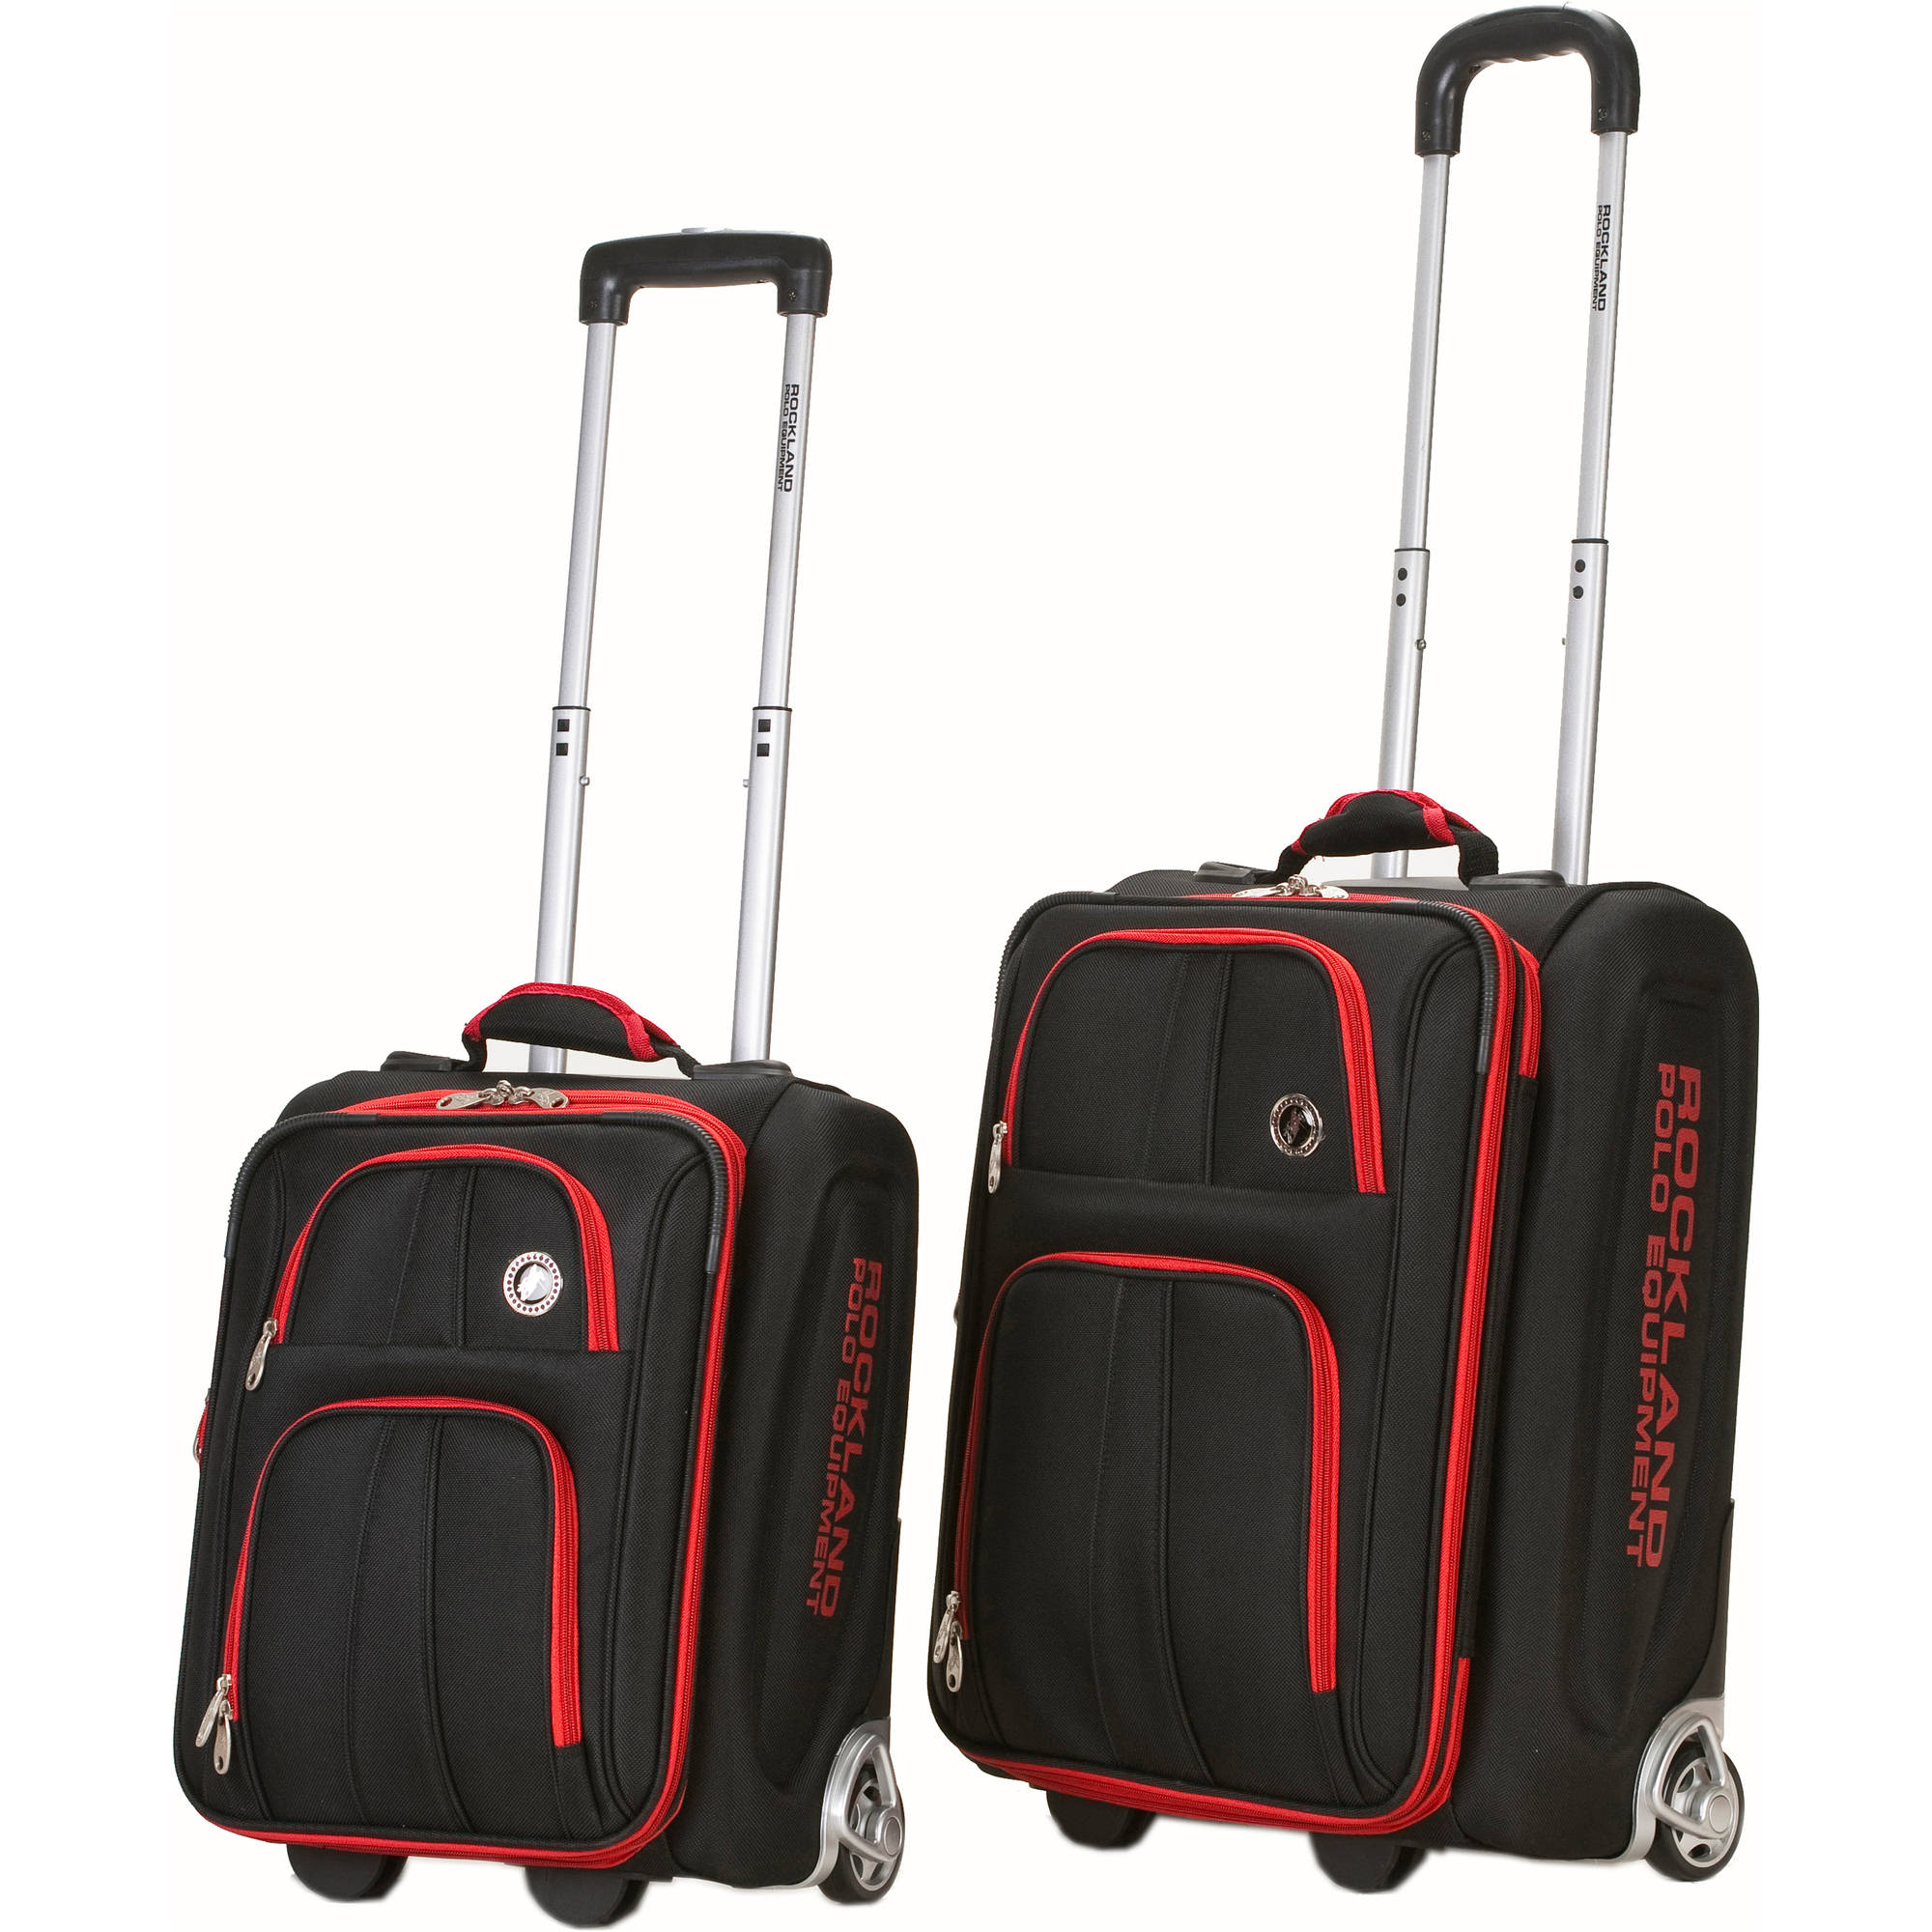 Rockland Luggage Polo Equipment 2-Piece Carry-On Luggage Set, Black